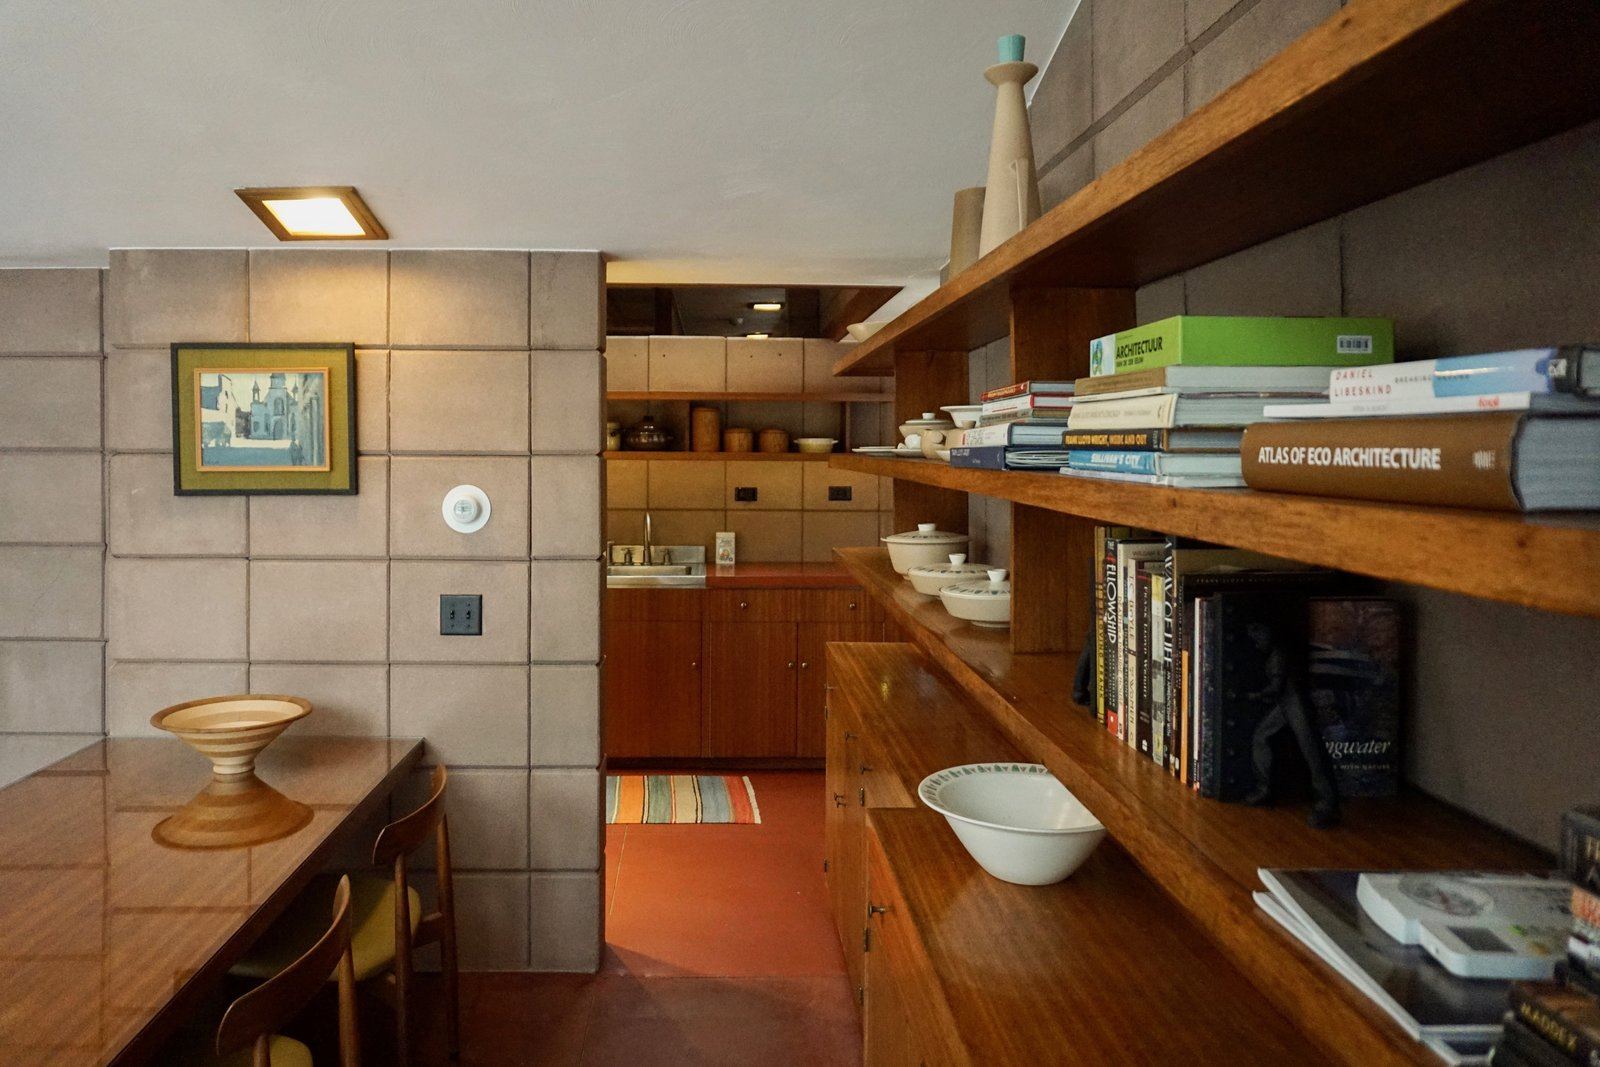 Storage Room and Shelves Storage Type Built-in shelving full of architecture and design books extend from the dining space to the kitchen.  Frank Lloyd Wright's Eppstein House from You Can Now Rent Frank Lloyd Wright's Gloriously Restored Eppstein House